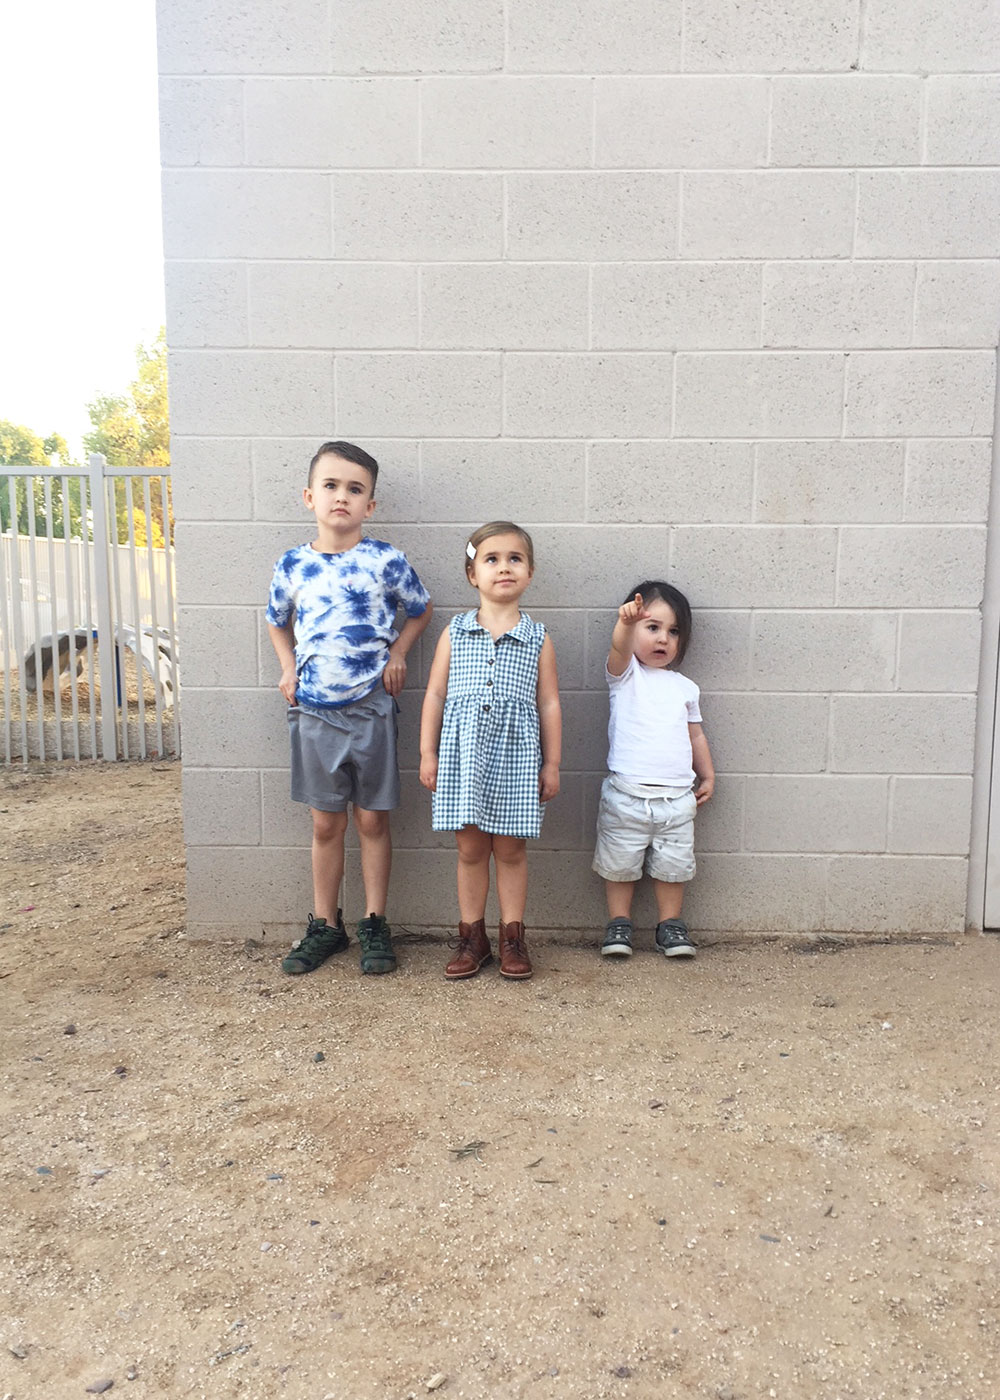 my three little kids ready for the school hoedown carnival | thelovedesignedlie.com